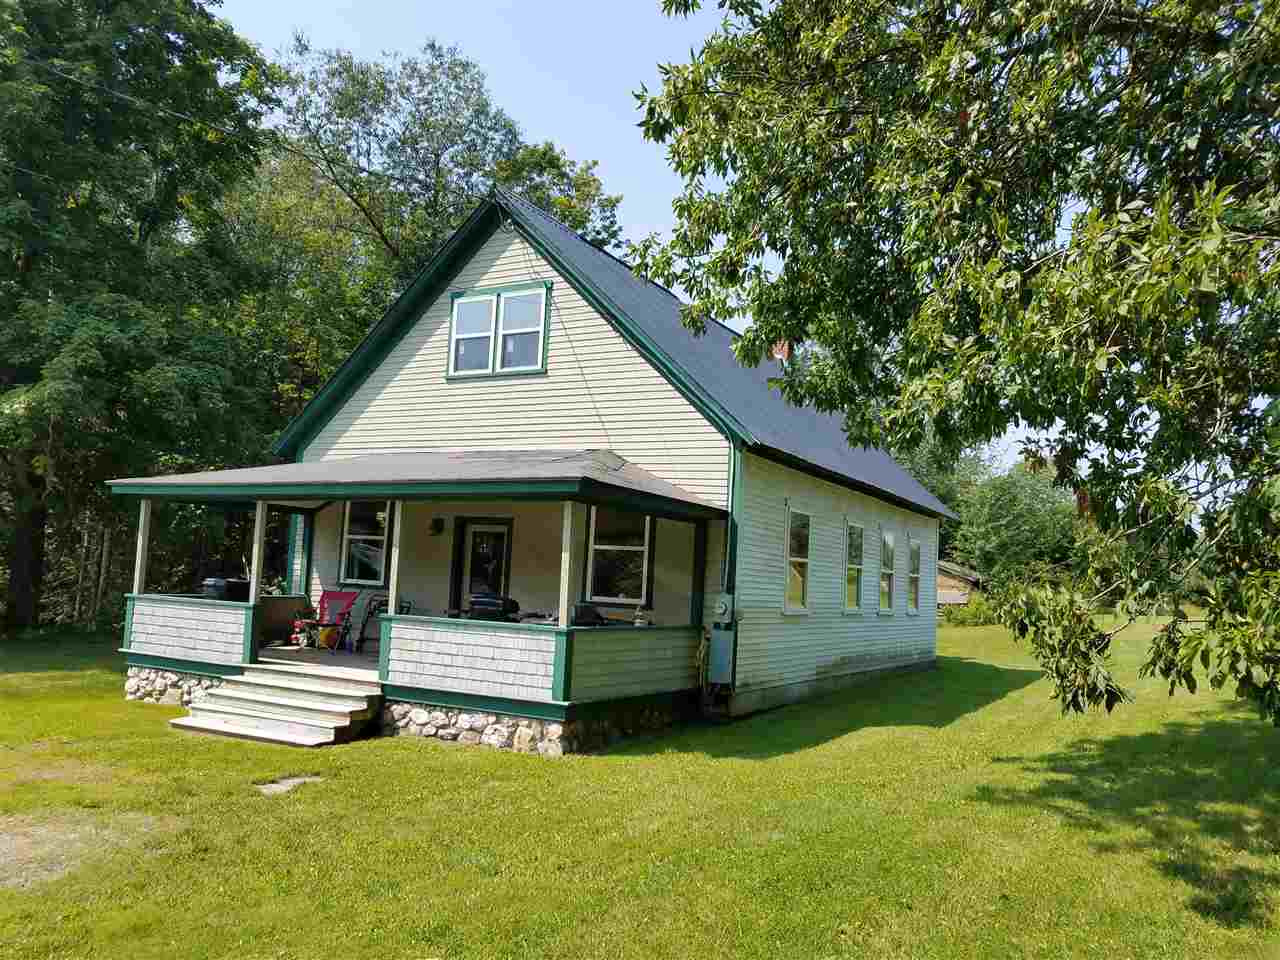 MLS 4721121: 5 Cemetary Road, Orford NH